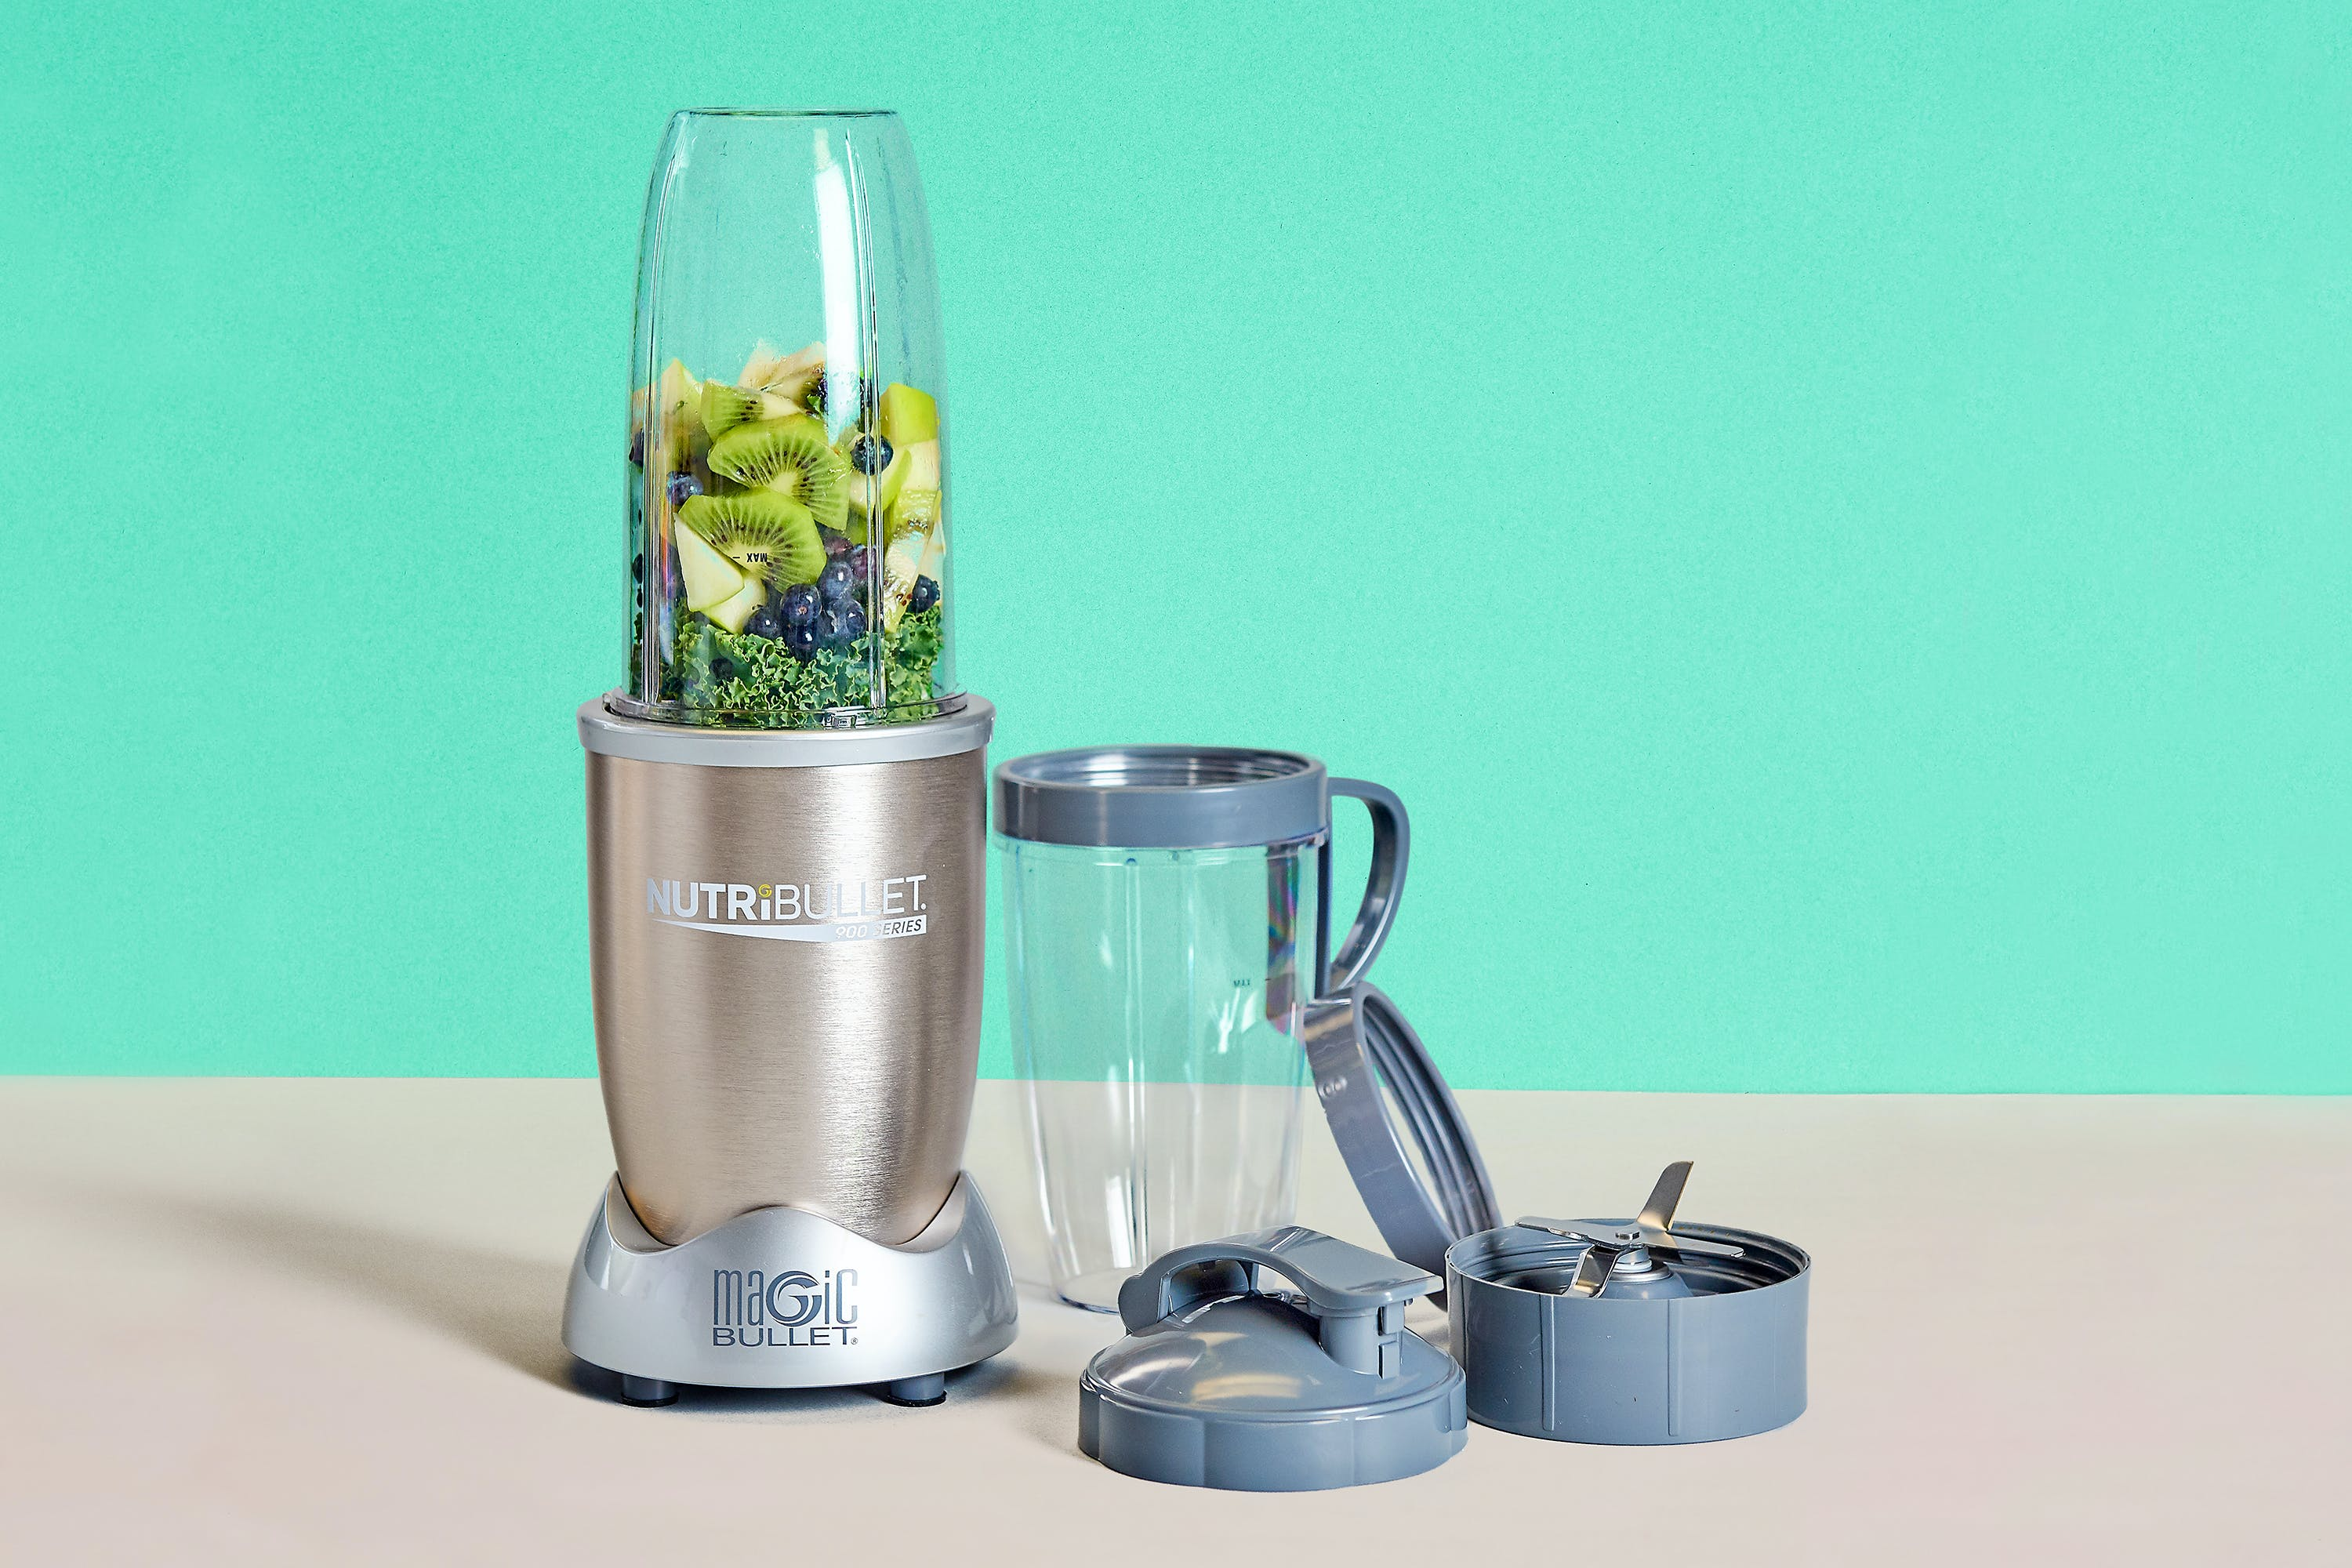 Getting Started: How To Use NutriBullet